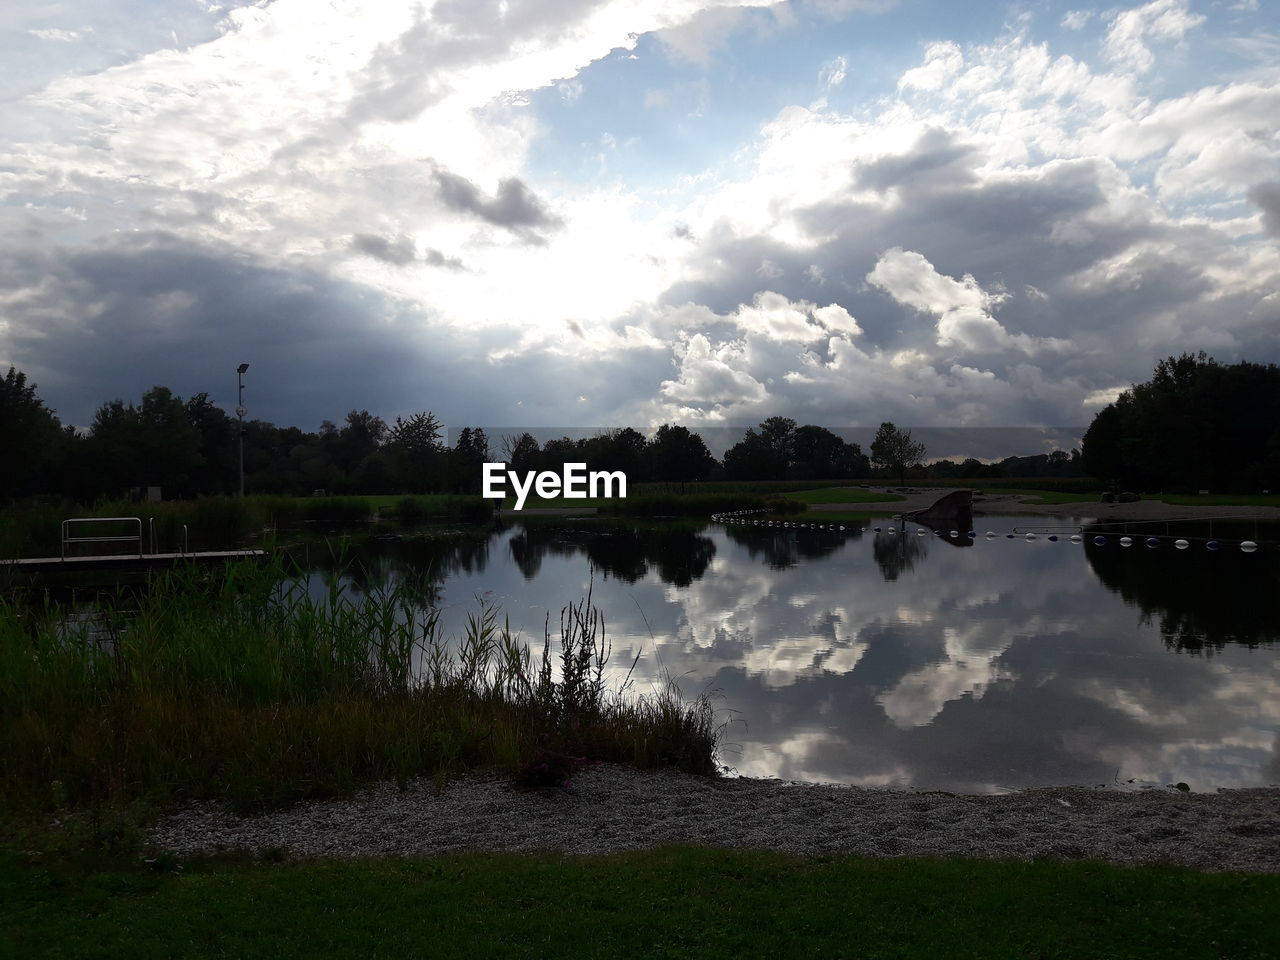 water, reflection, sky, cloud - sky, nature, tranquility, beauty in nature, lake, scenics, tranquil scene, outdoors, tree, no people, grass, landscape, day, power in nature